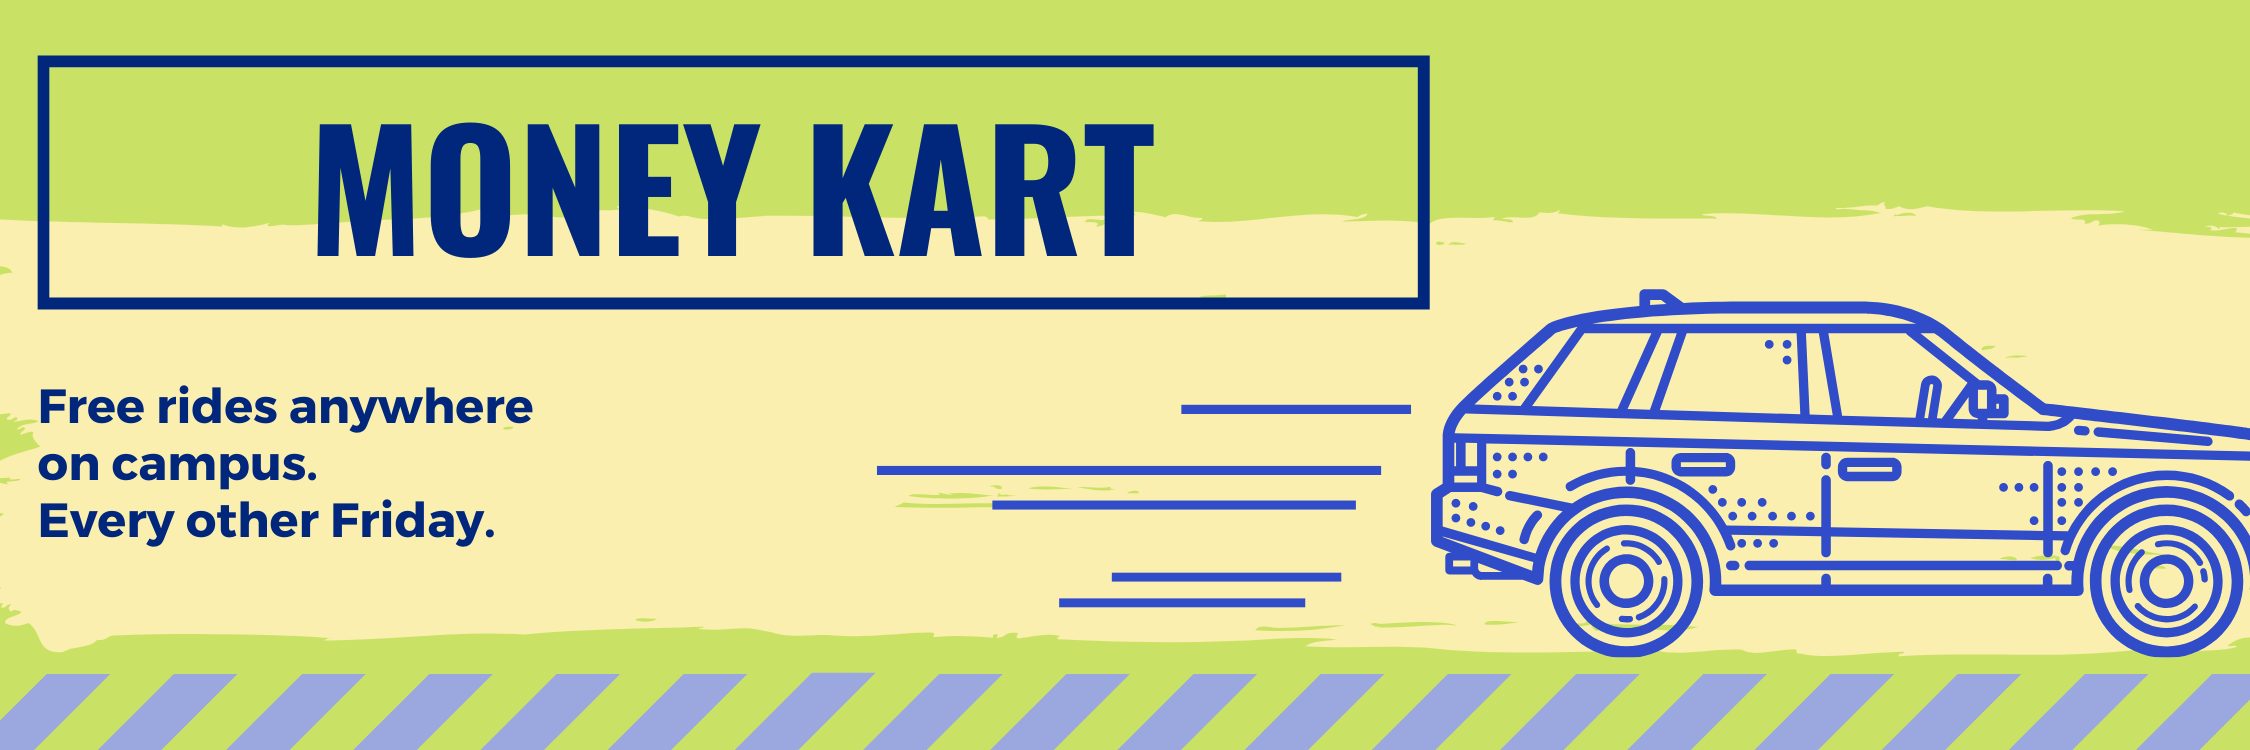 Money Kart- Free Rides anywhere on campus. every other friday